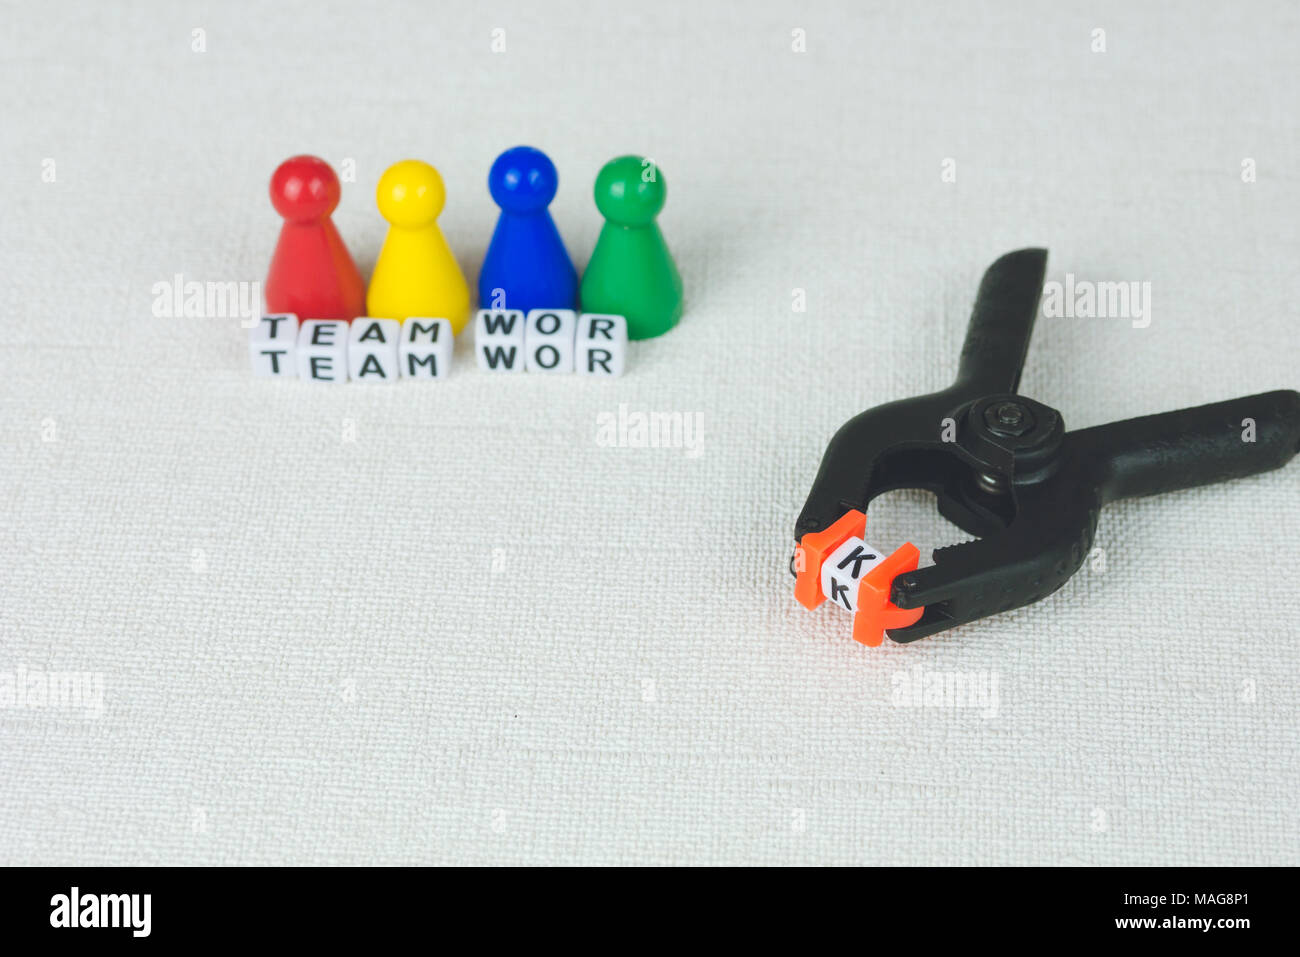 Team work concept - Figures in the line and an clamp tool as symbol for a working labor team collaboration - Stock Image